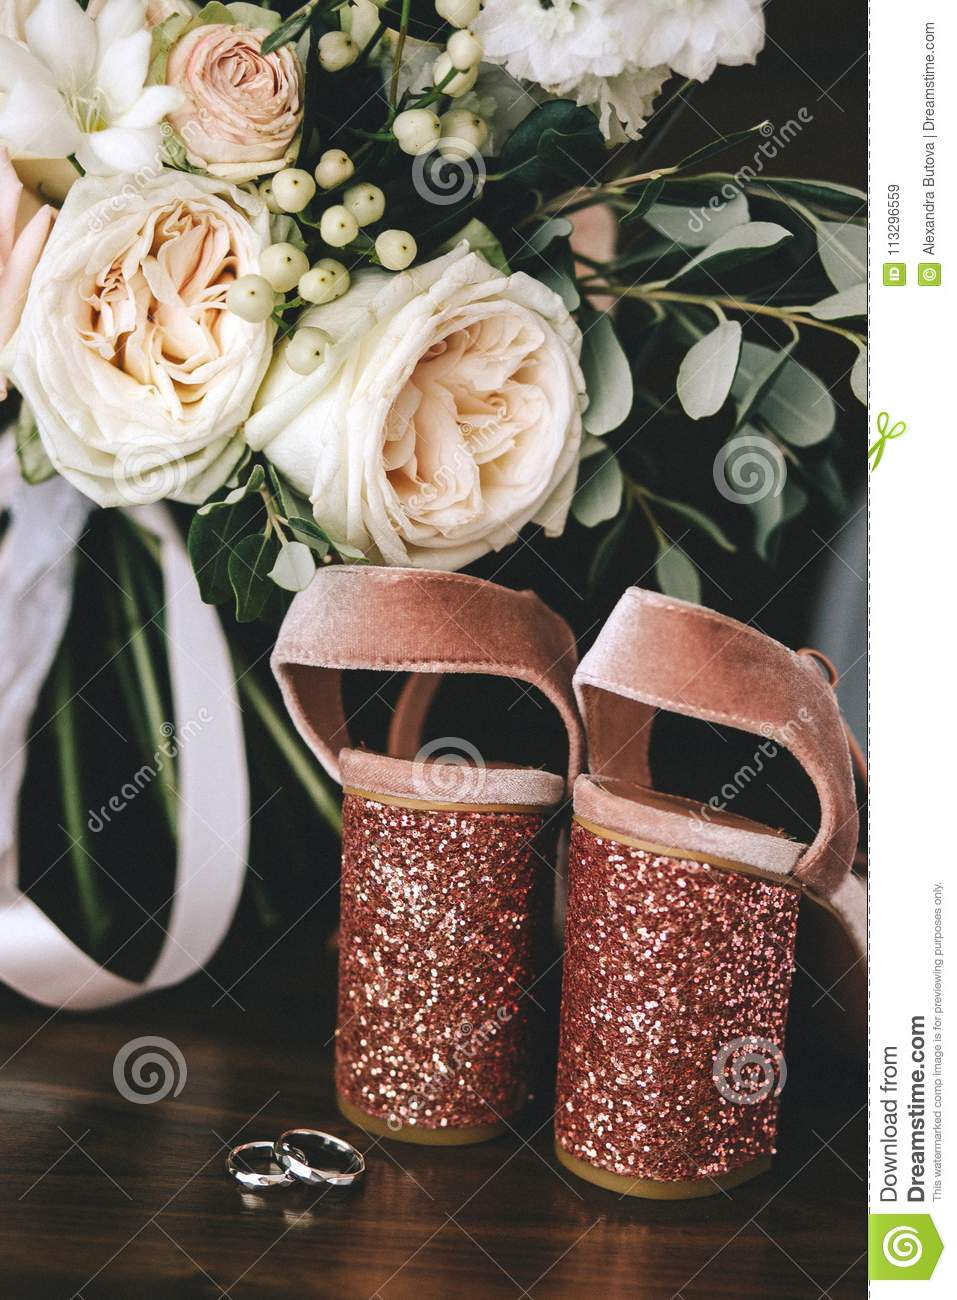 Wedding velvet pink shoes with shiny beautiful heels with gold wedding rings beside a bouquet of white roses, eucalyptus on a dark